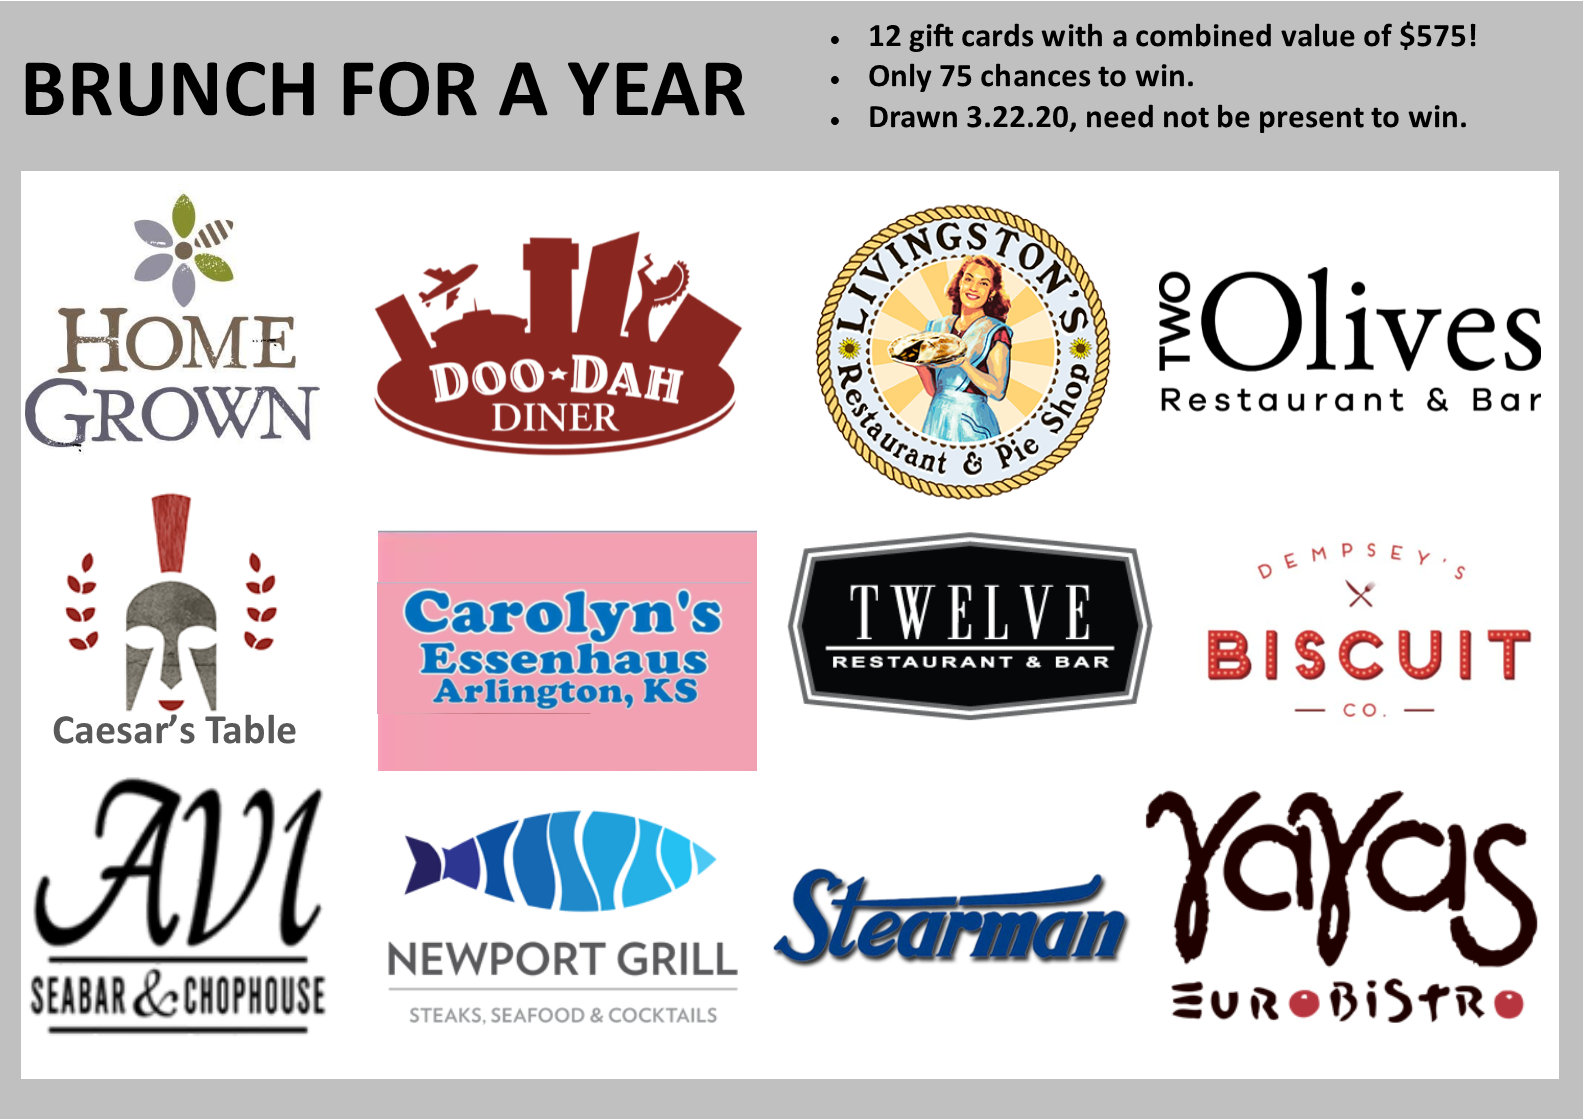 Don't miss your chance to win Brunch For A Year!